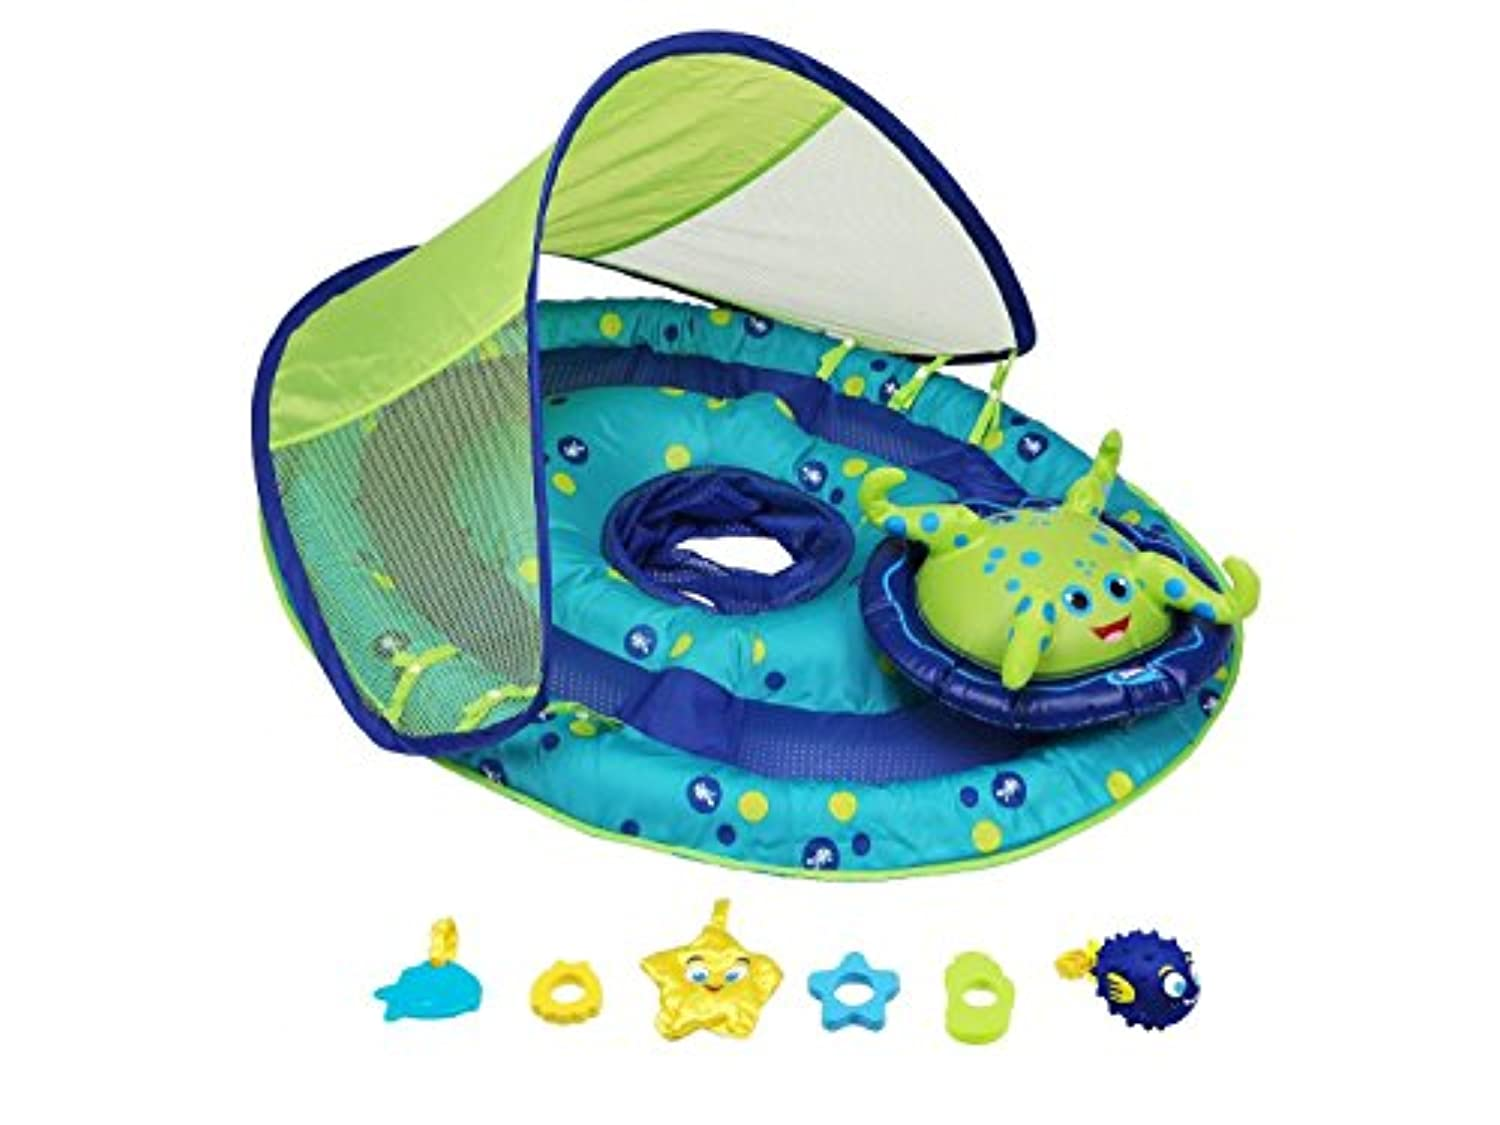 Classier: Buy SwimWays SwimWays Baby Spring Float Activity Center with Canopy - Inflatable Float for Children with Interactive Toys and UPF Sun Protection - Blue/Green Octopus